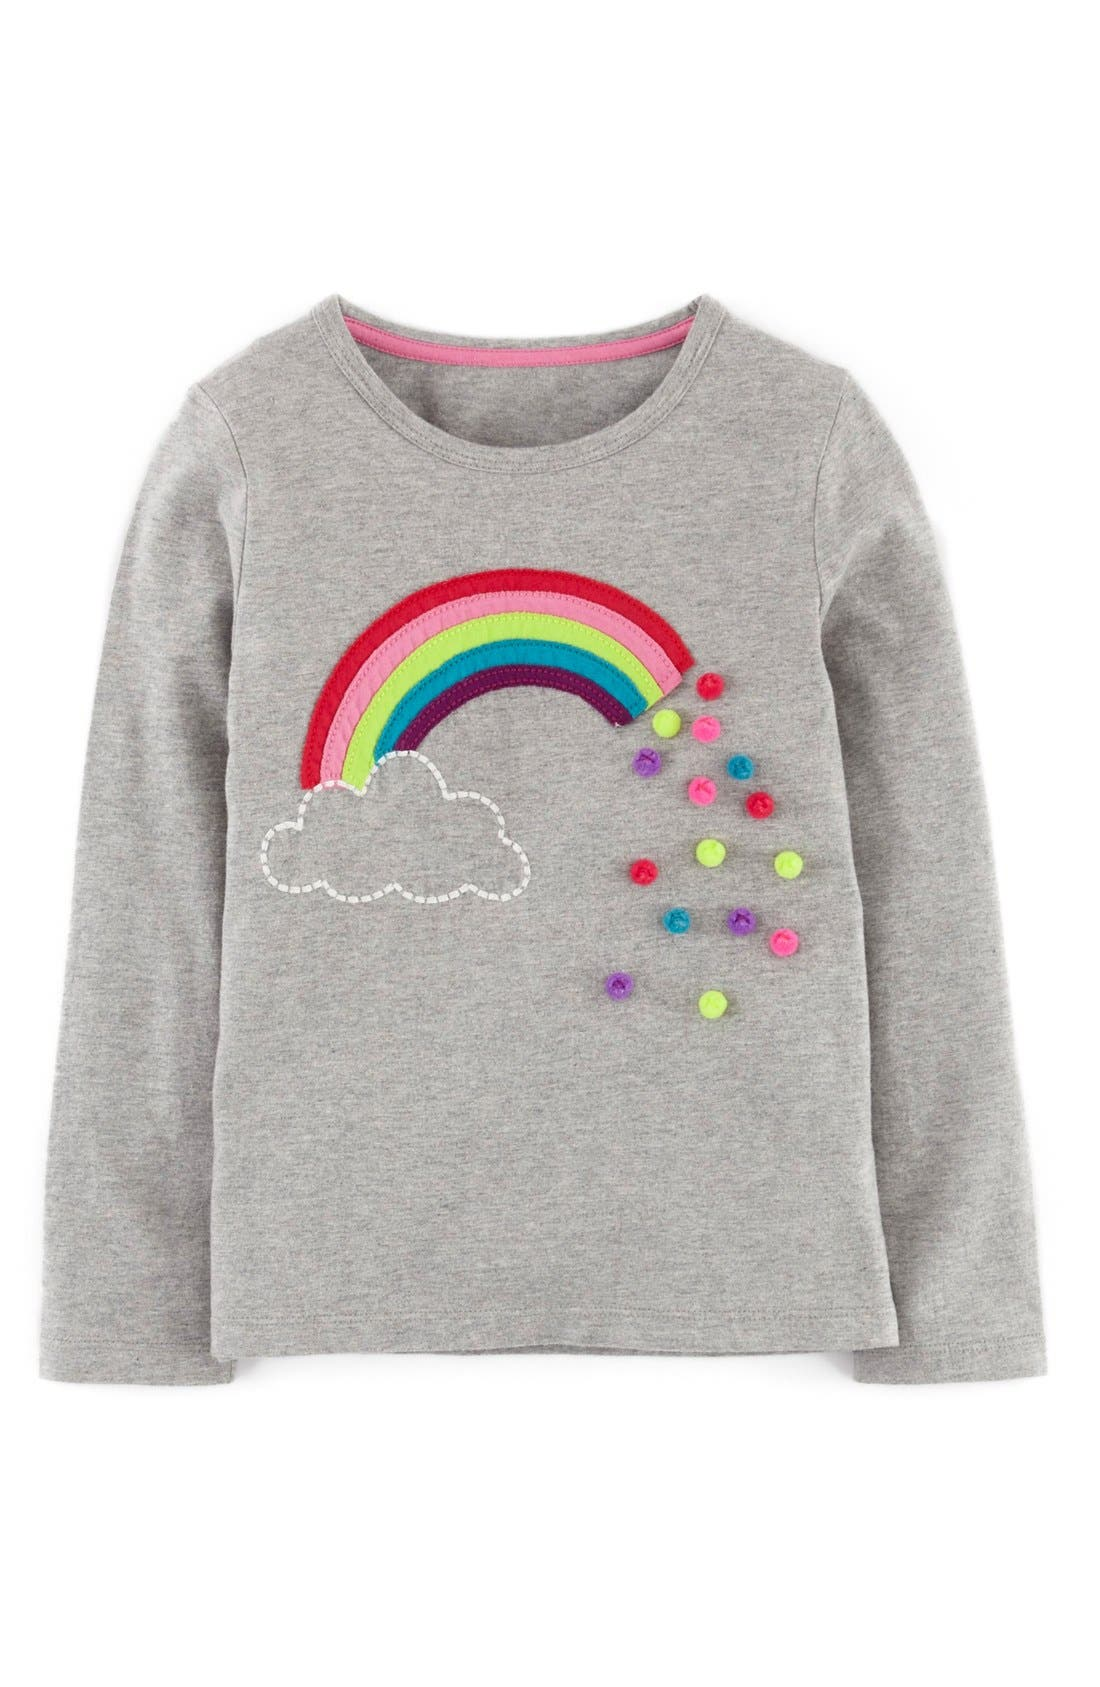 Main Image - Mini Boden Dotty Appliqué Tee (Toddler Girls, Little Girls & Big Girls)